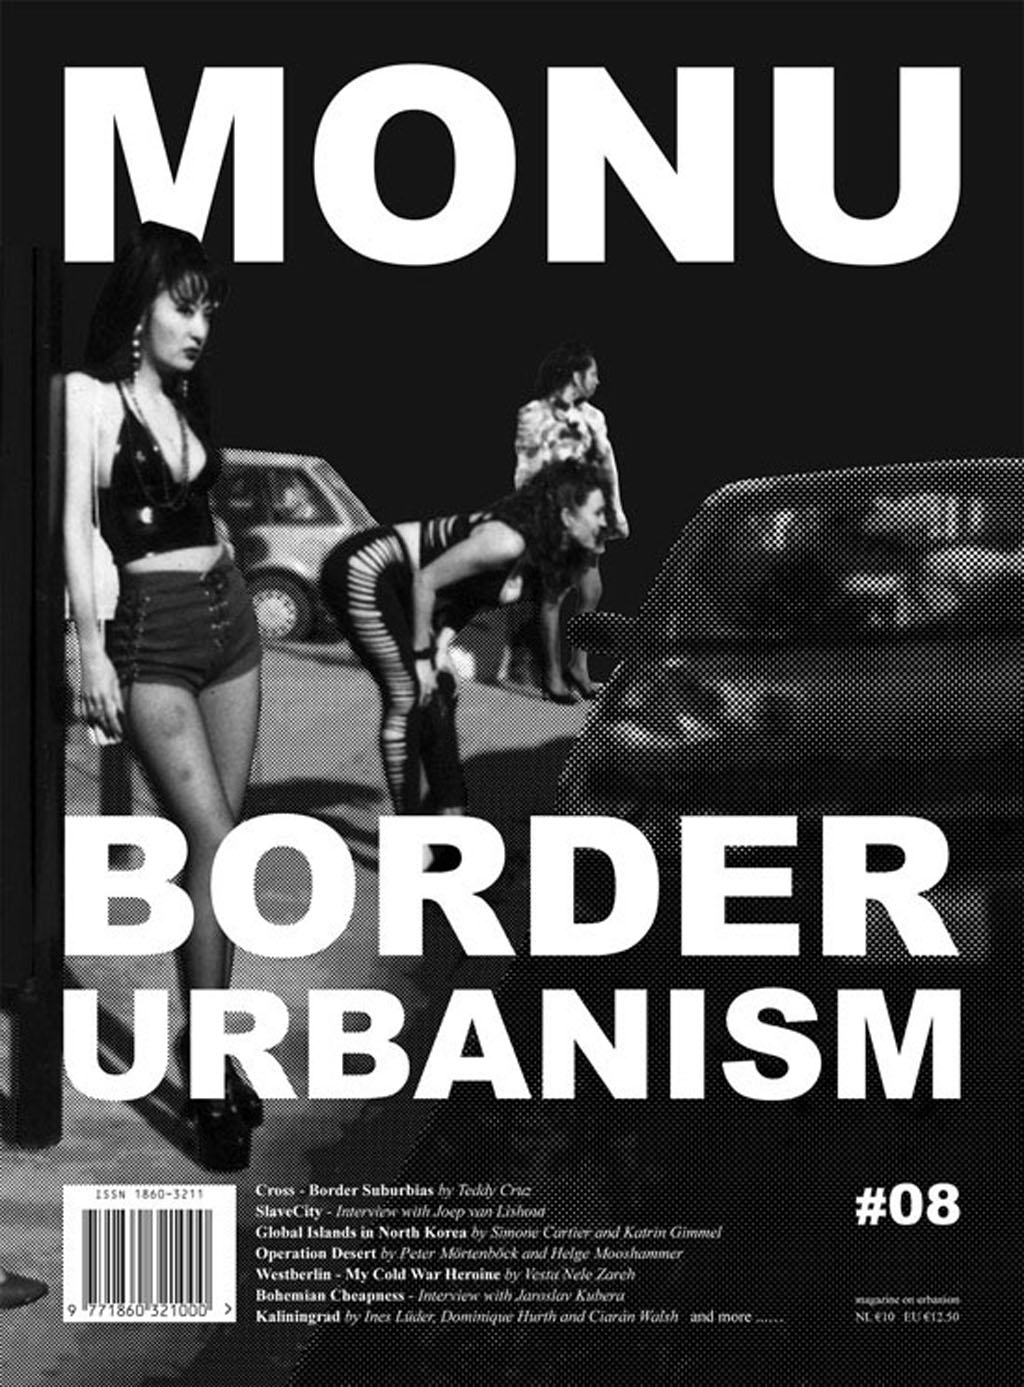 MONU magazine on urbanism 8 – Border Urbanism